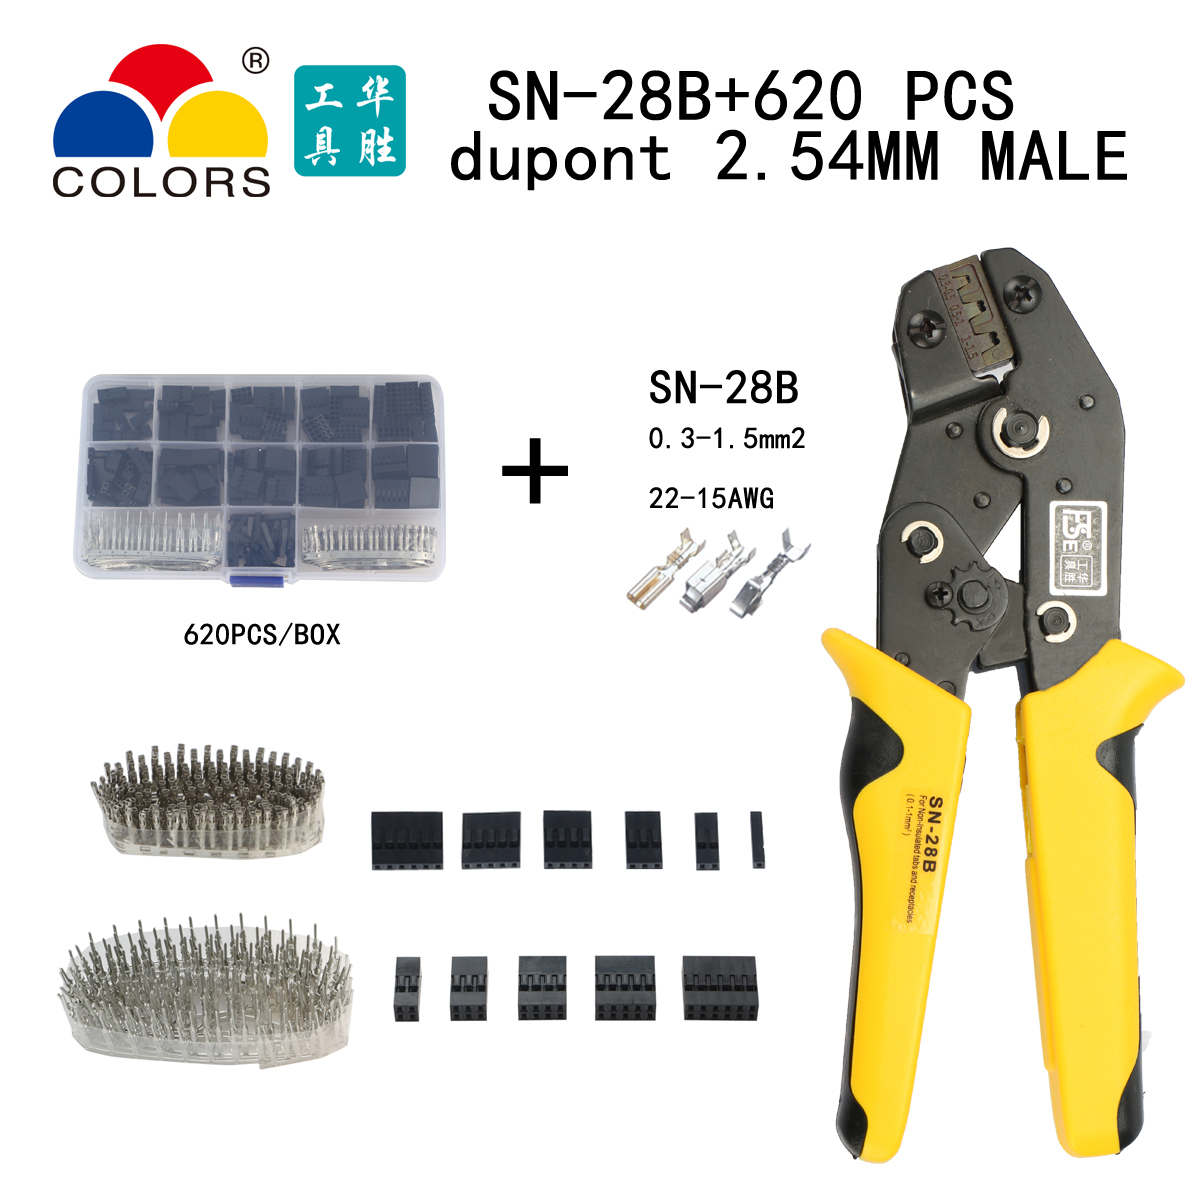 SN-28B Dupont Crimp Tool 0.3-1.5mm2/22-15AWG 620pcs 2.54mm Dupont Cable Jumper Wire Pin Header Housing,terminals Clamp Kit Tool(China)